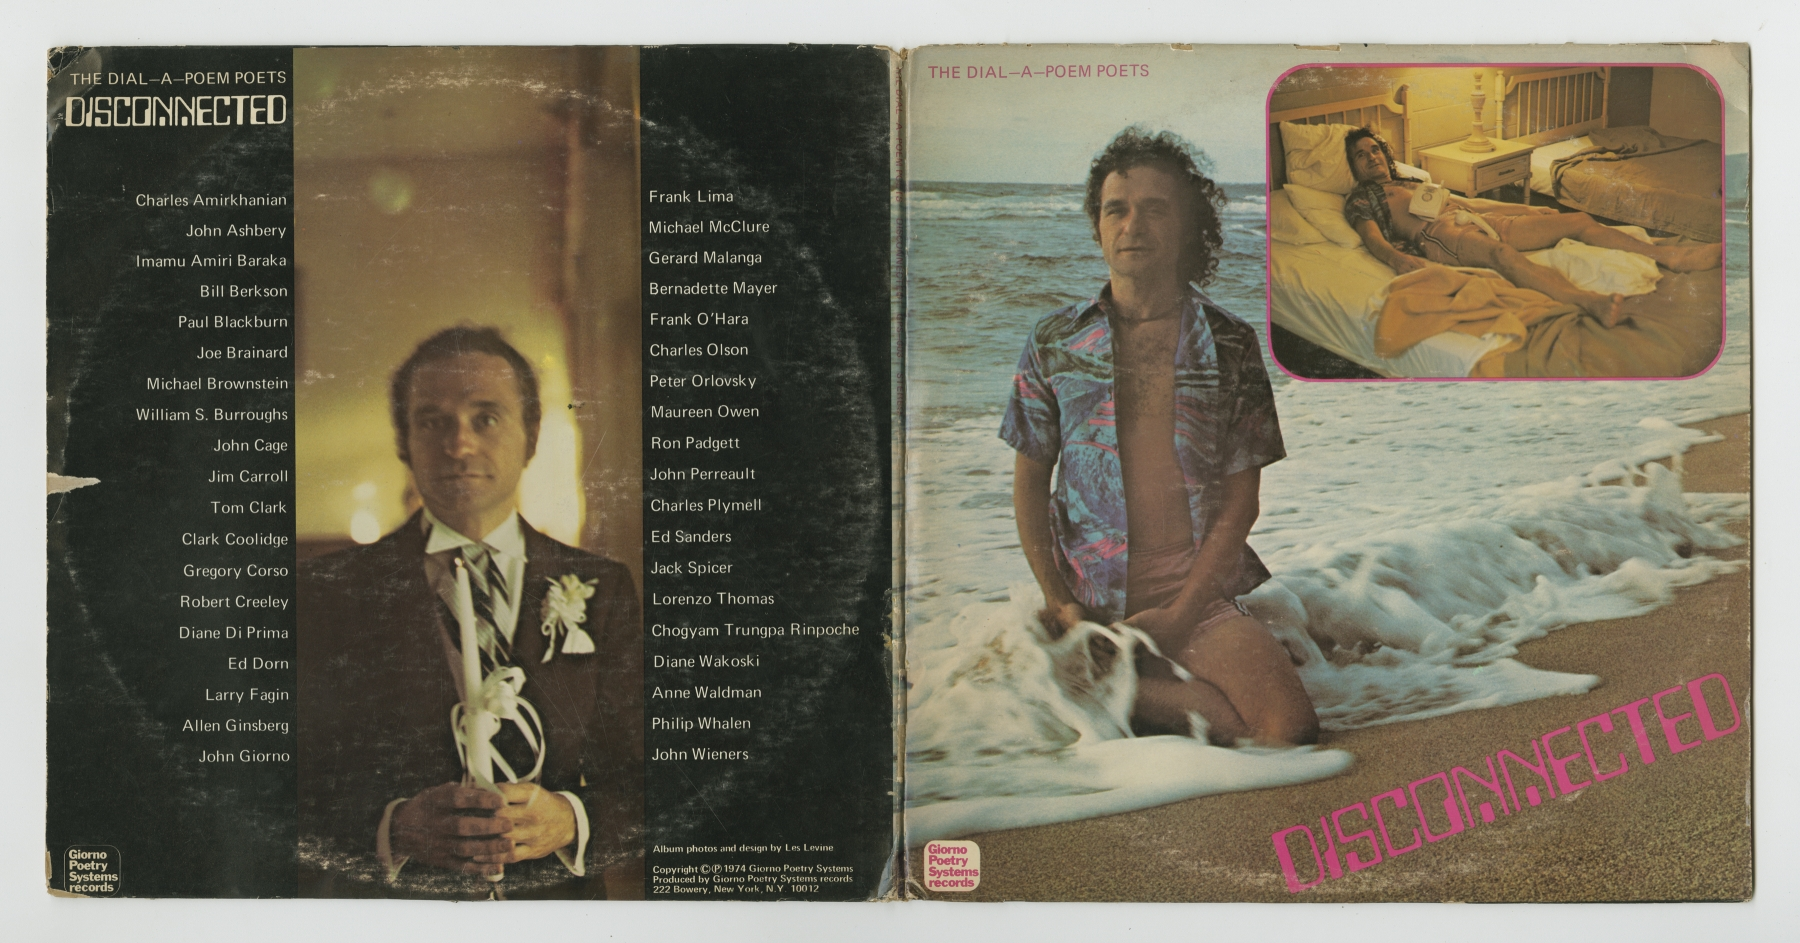 The Dial-A-Poem Poets: Disconnected (1974), front and back covers